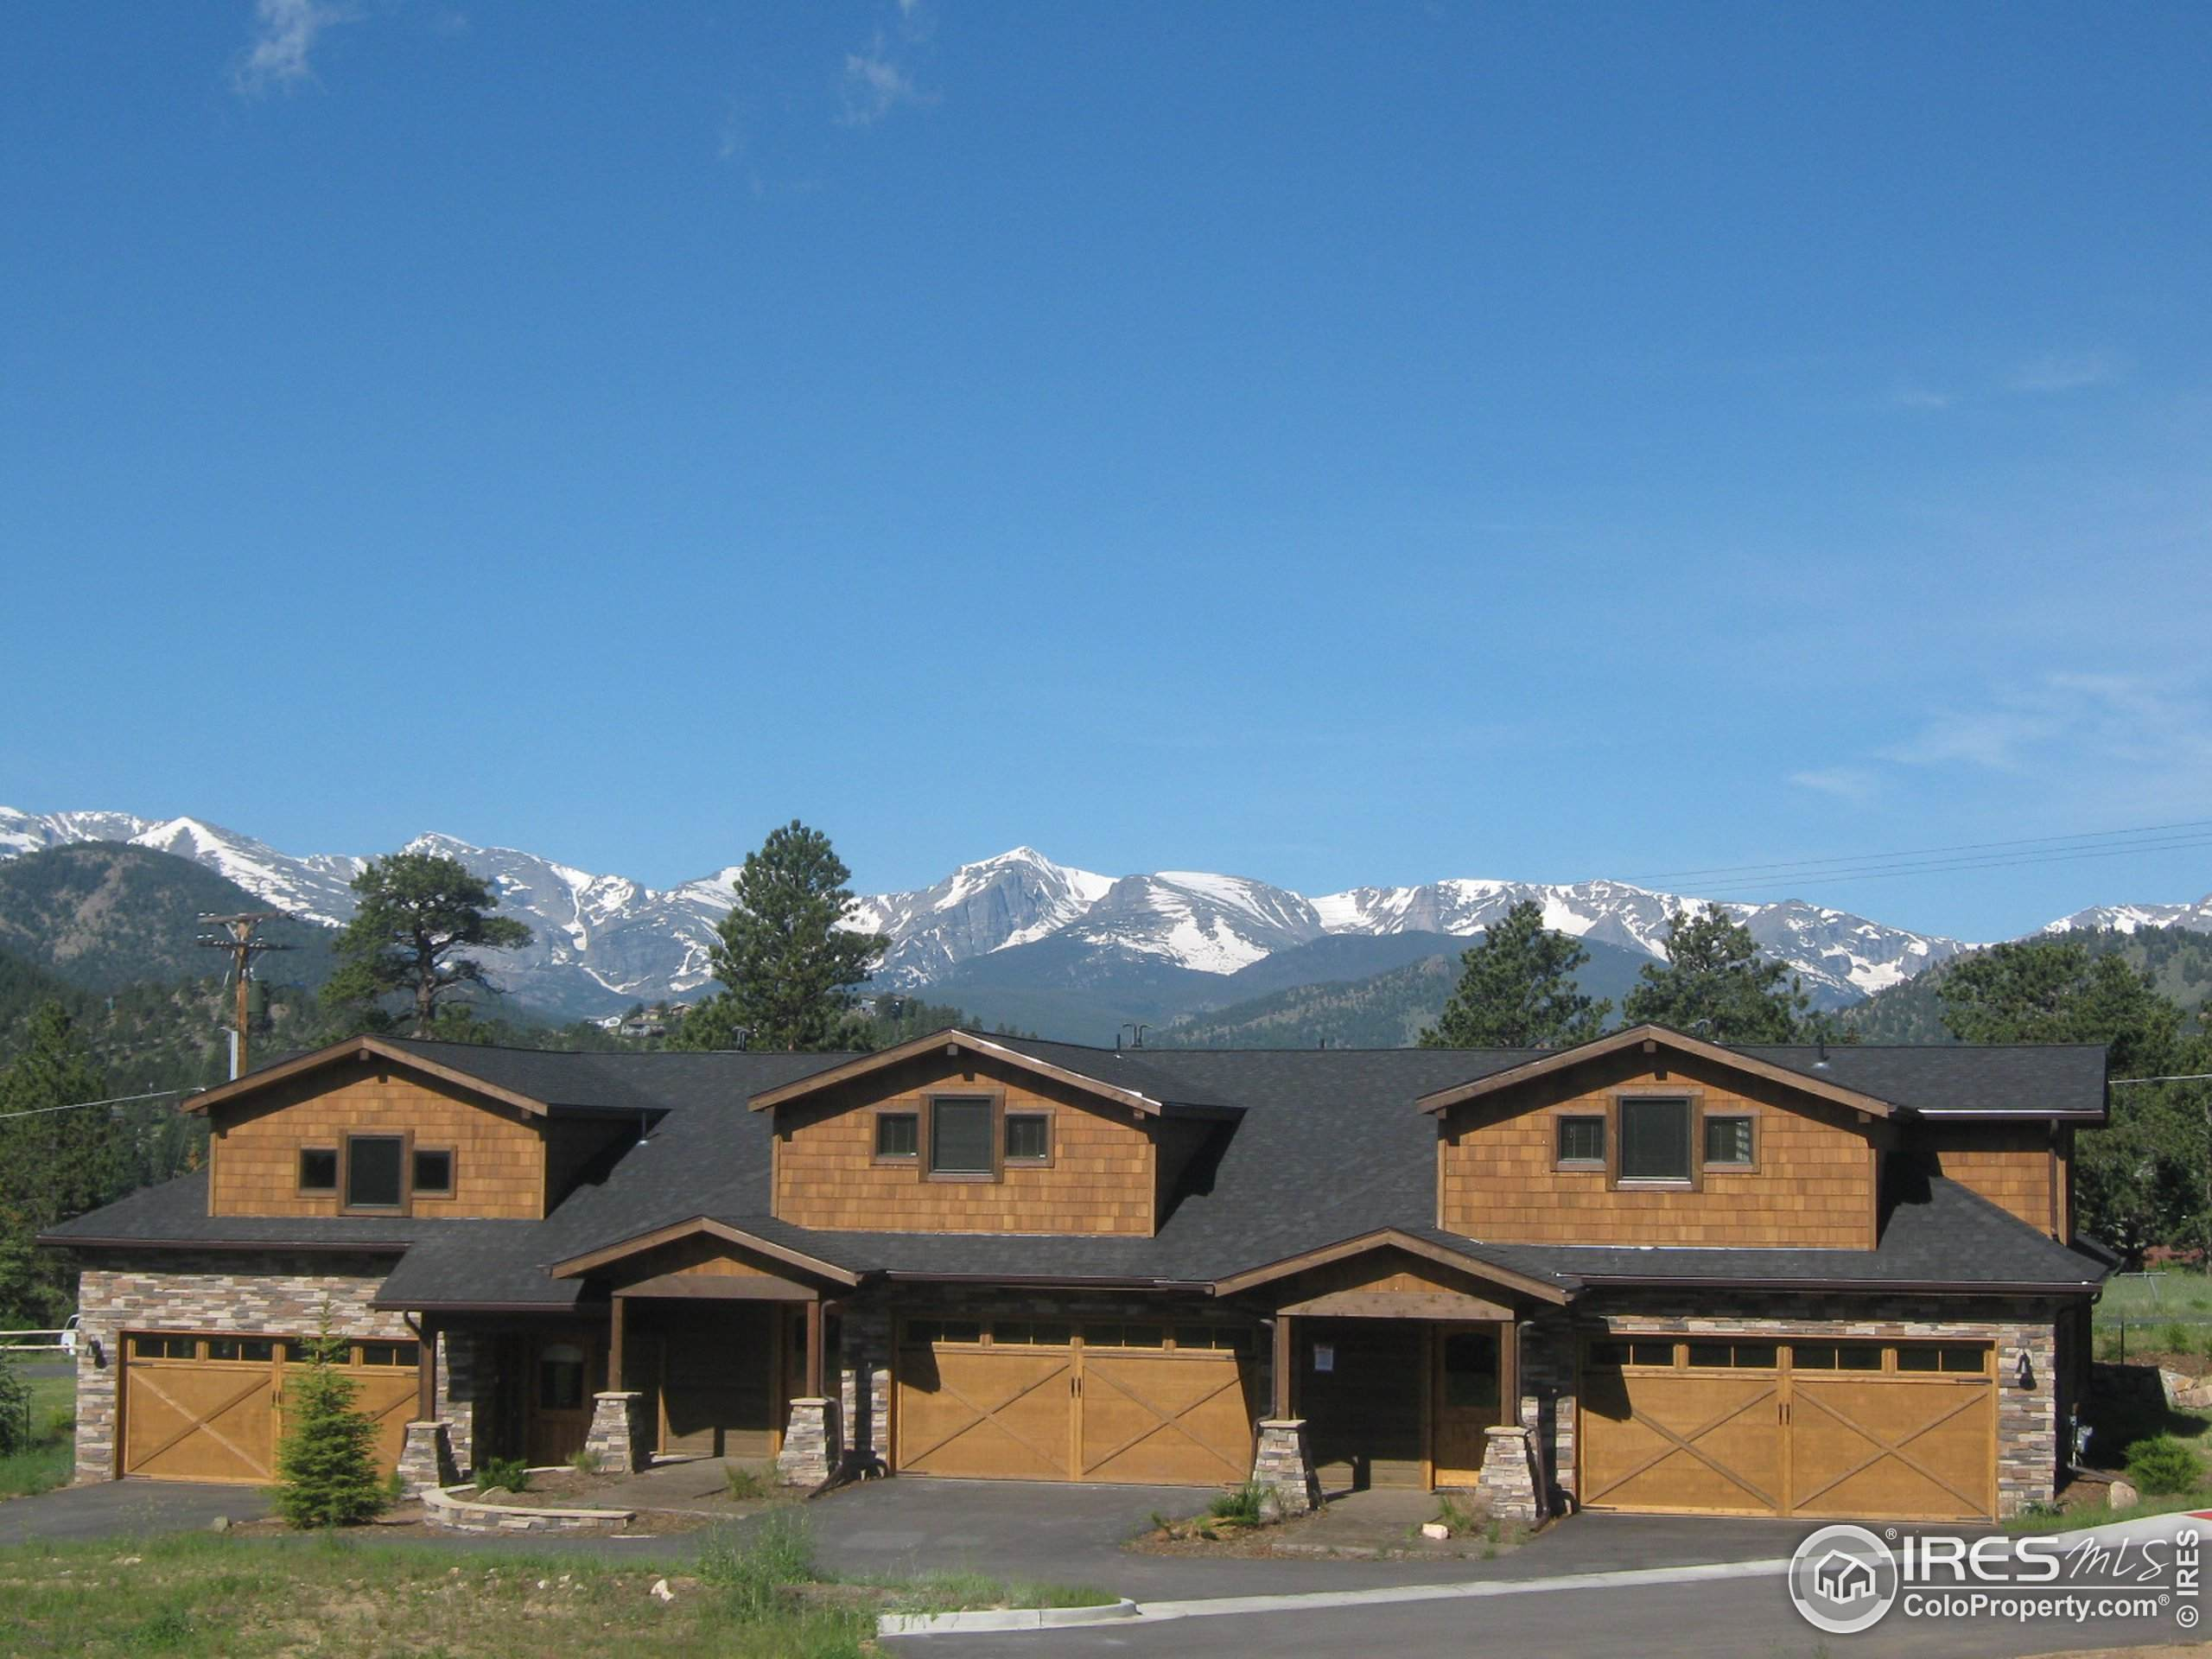 5600 W 3rd St #4, Greeley, CO 80634 (MLS #925873) :: The Sam Biller Home Team